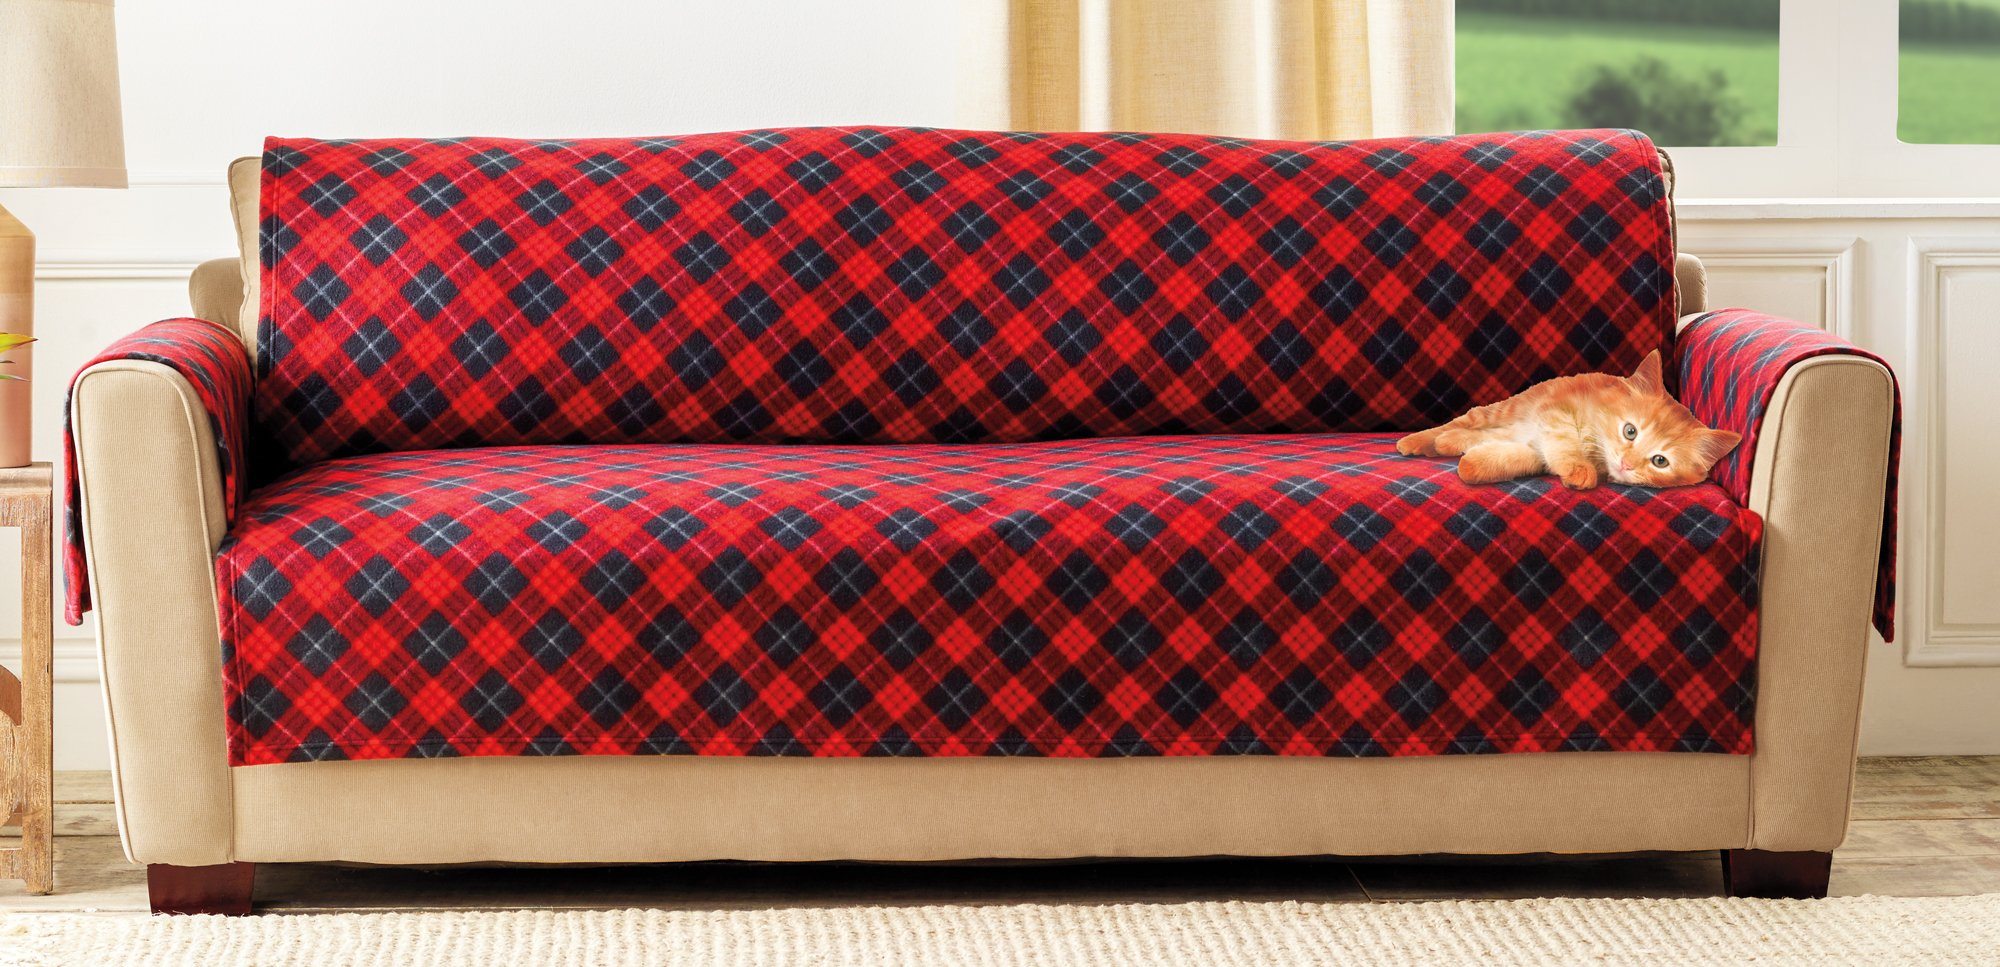 The Paragon Furniture Cover - Sofa or Couch Furniture Protector, Soft Plaid Fleece Fabric, Sofa Cover Shield Protects Fabric from Stains and Every Day Wear